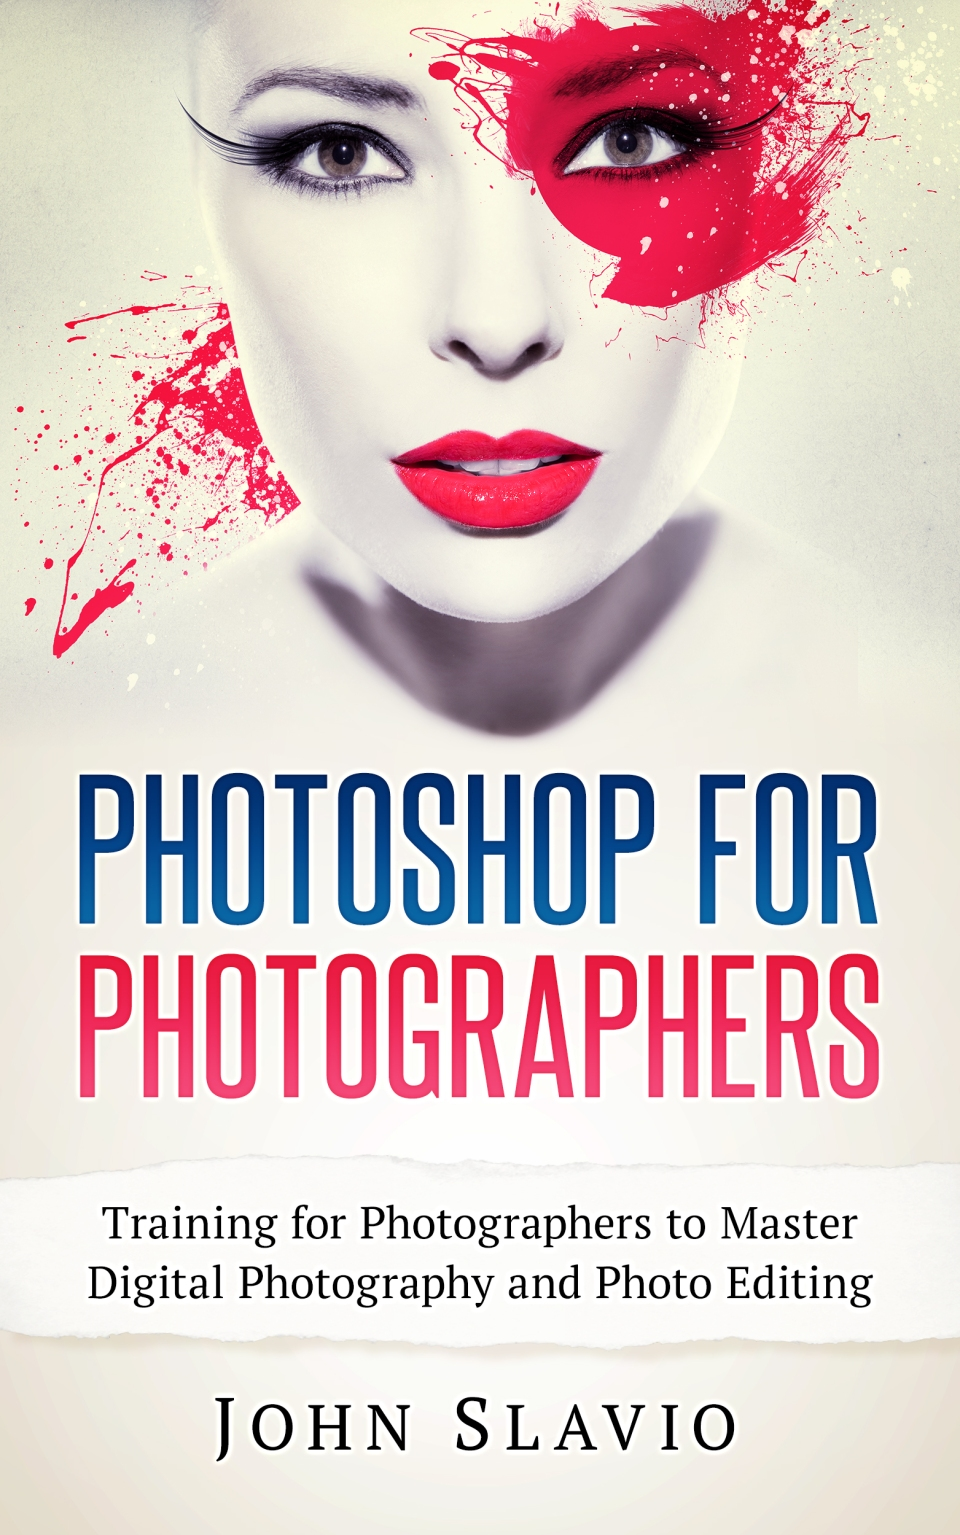 photoshop-for-photographers